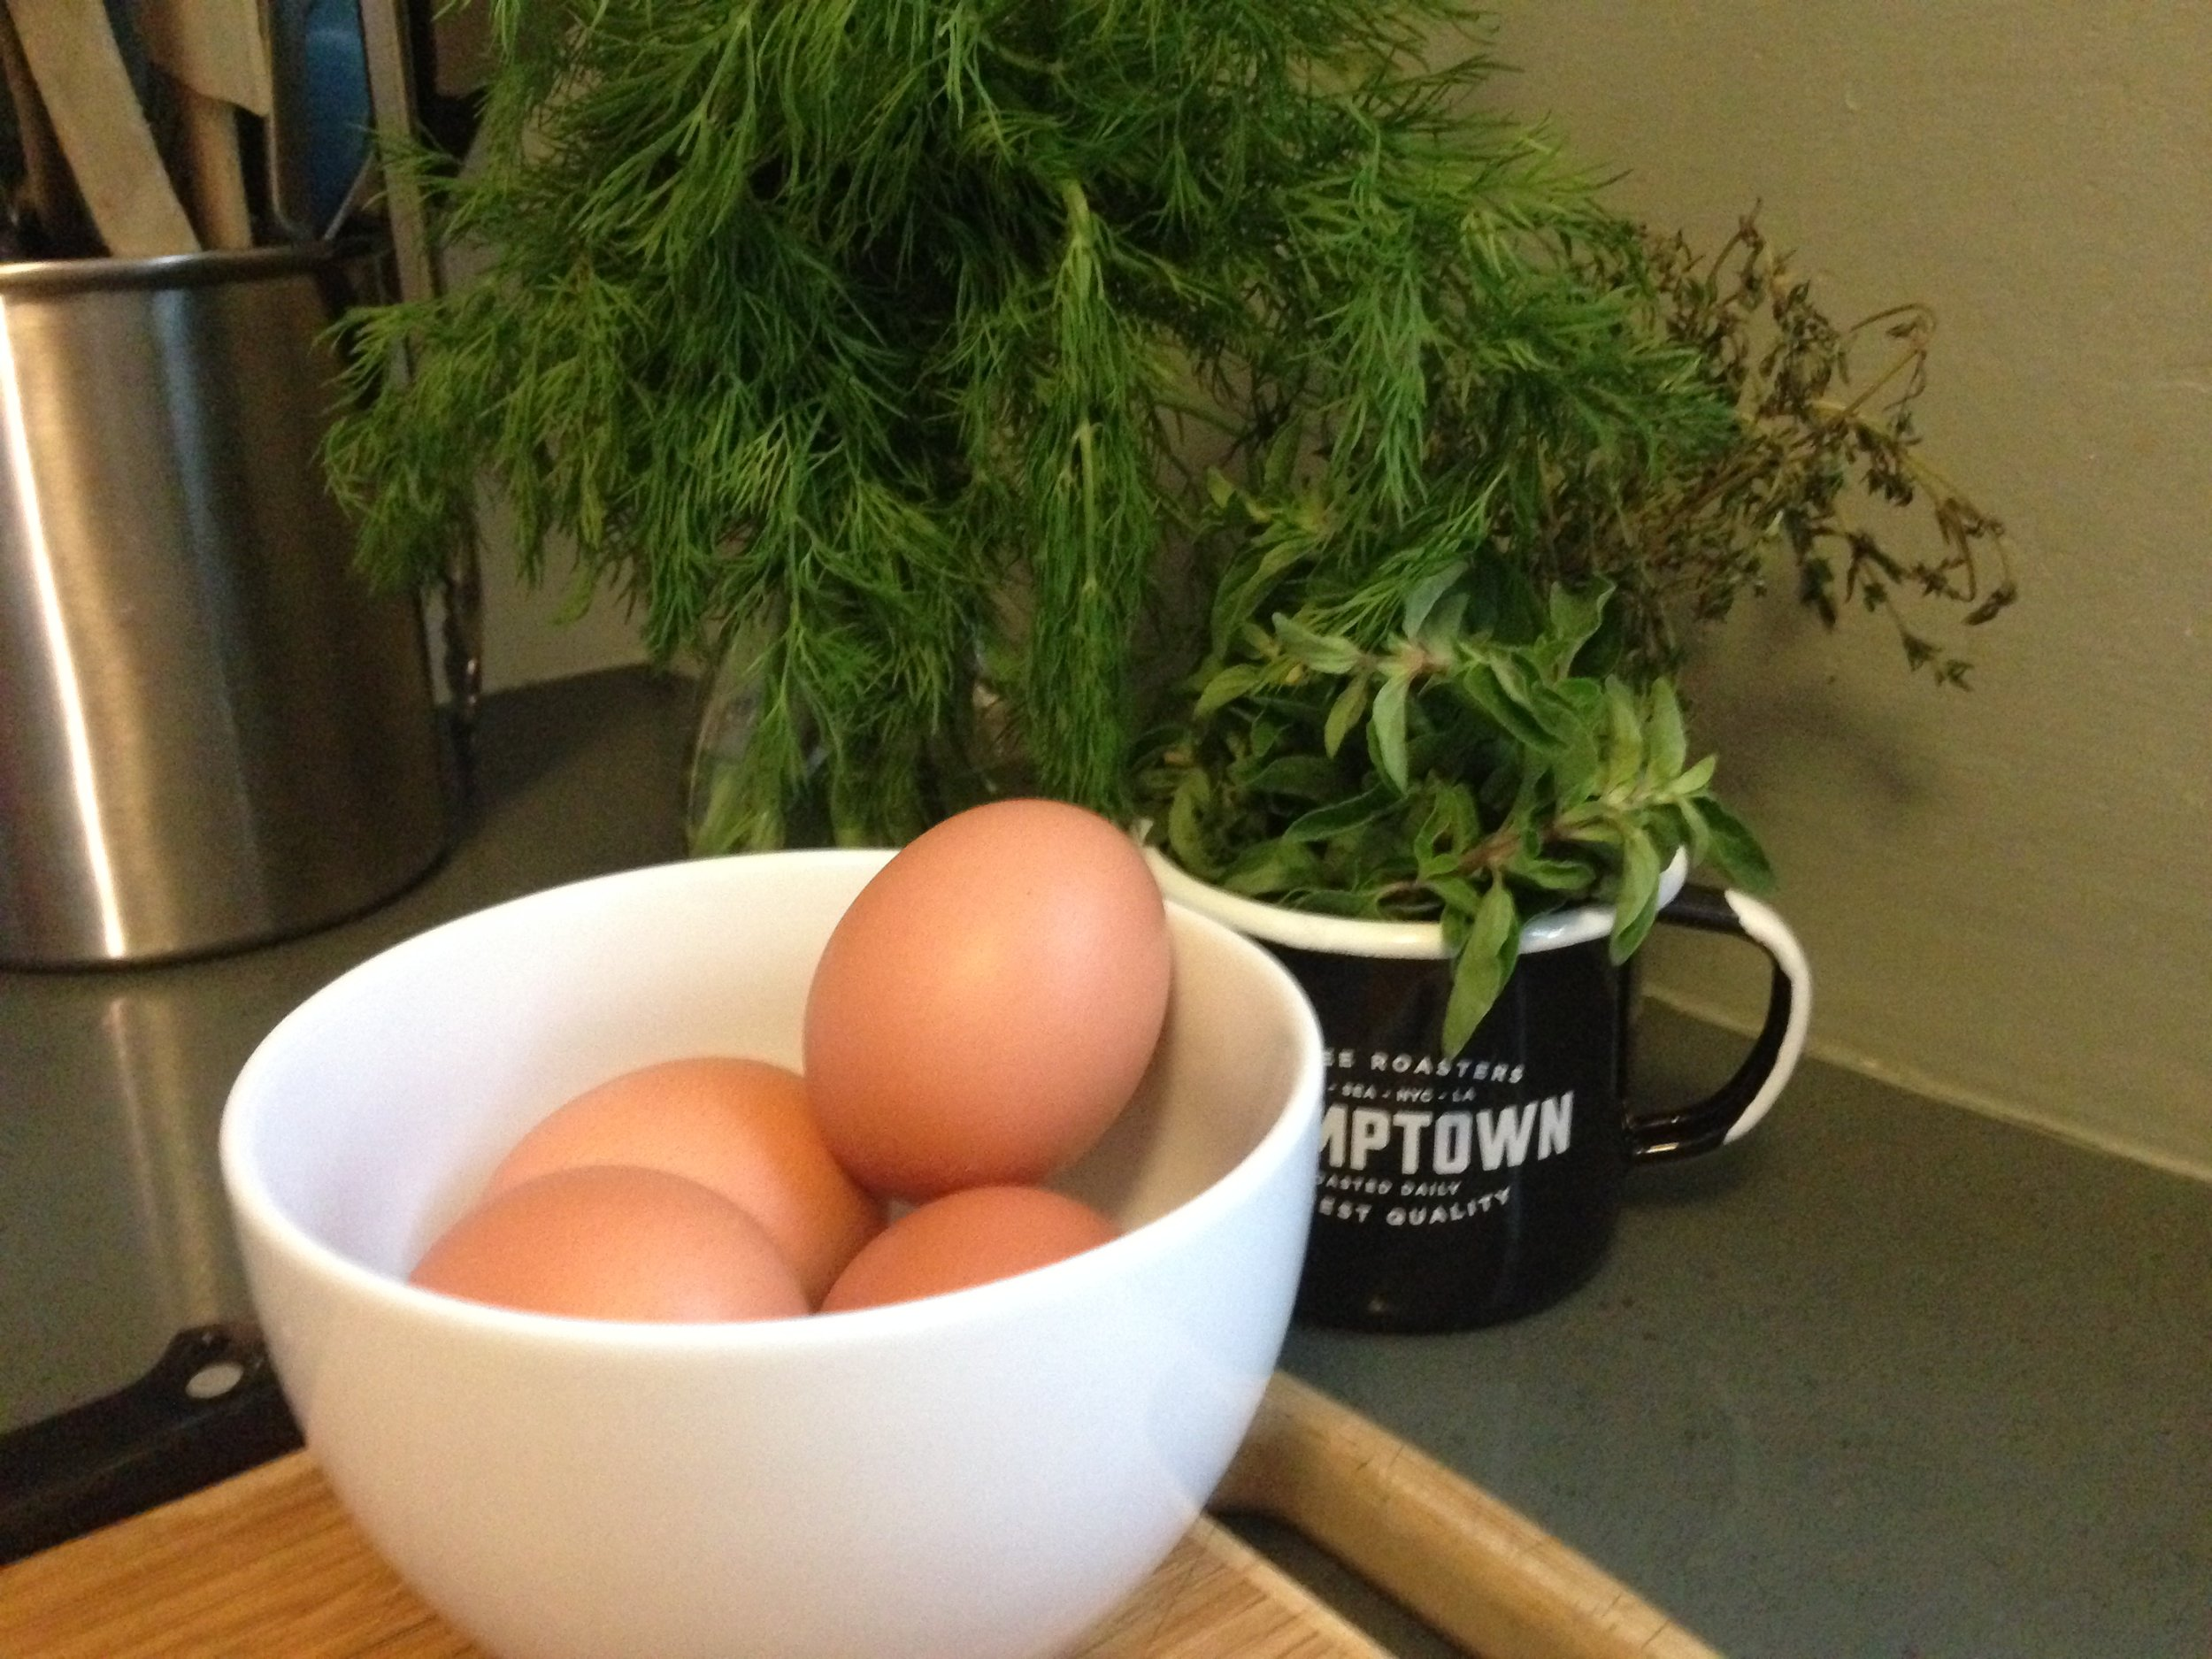 Eggs, and assorted Fresh Herbs for my Omelette.